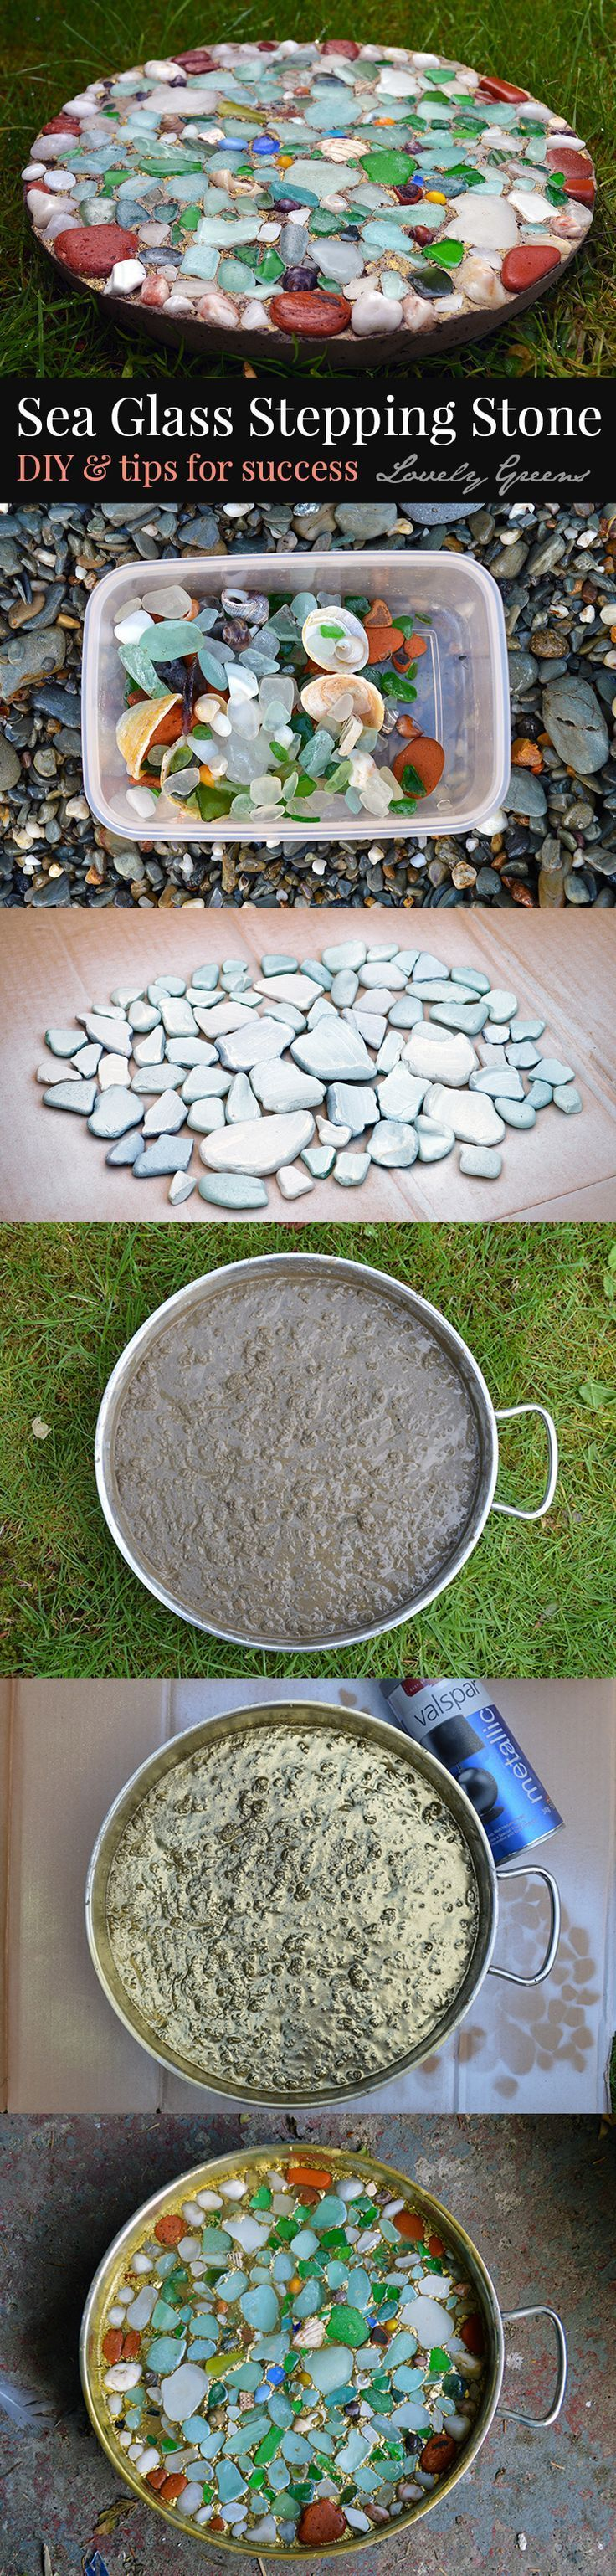 Create A Stepping Stone Using Beach Gl That Still Looks Wet What Great Way